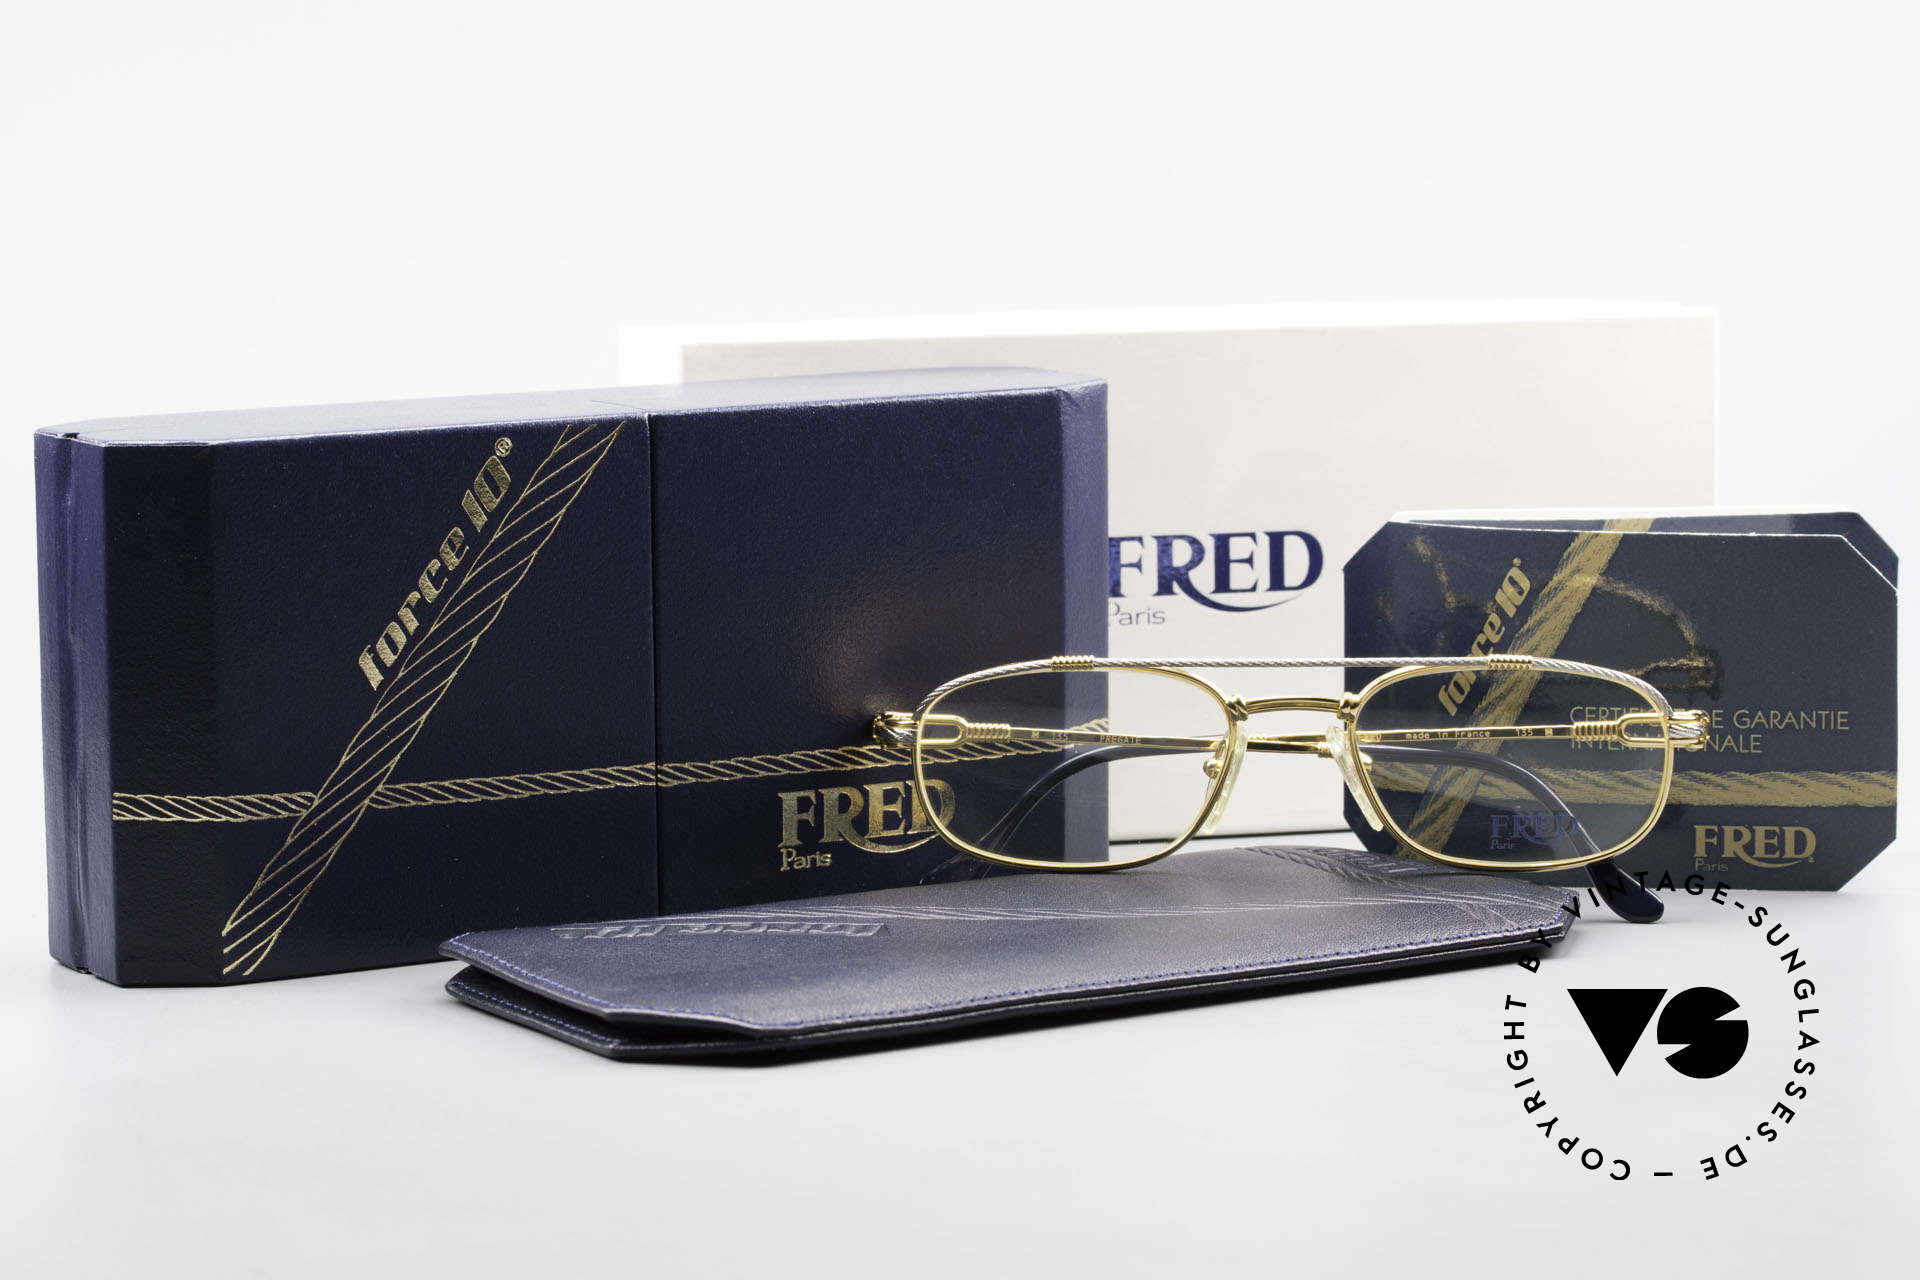 Fred Fregate Luxury Sailing Glasses S Frame, unworn, like all our precious vintage eyeglass-frames, Made for Men